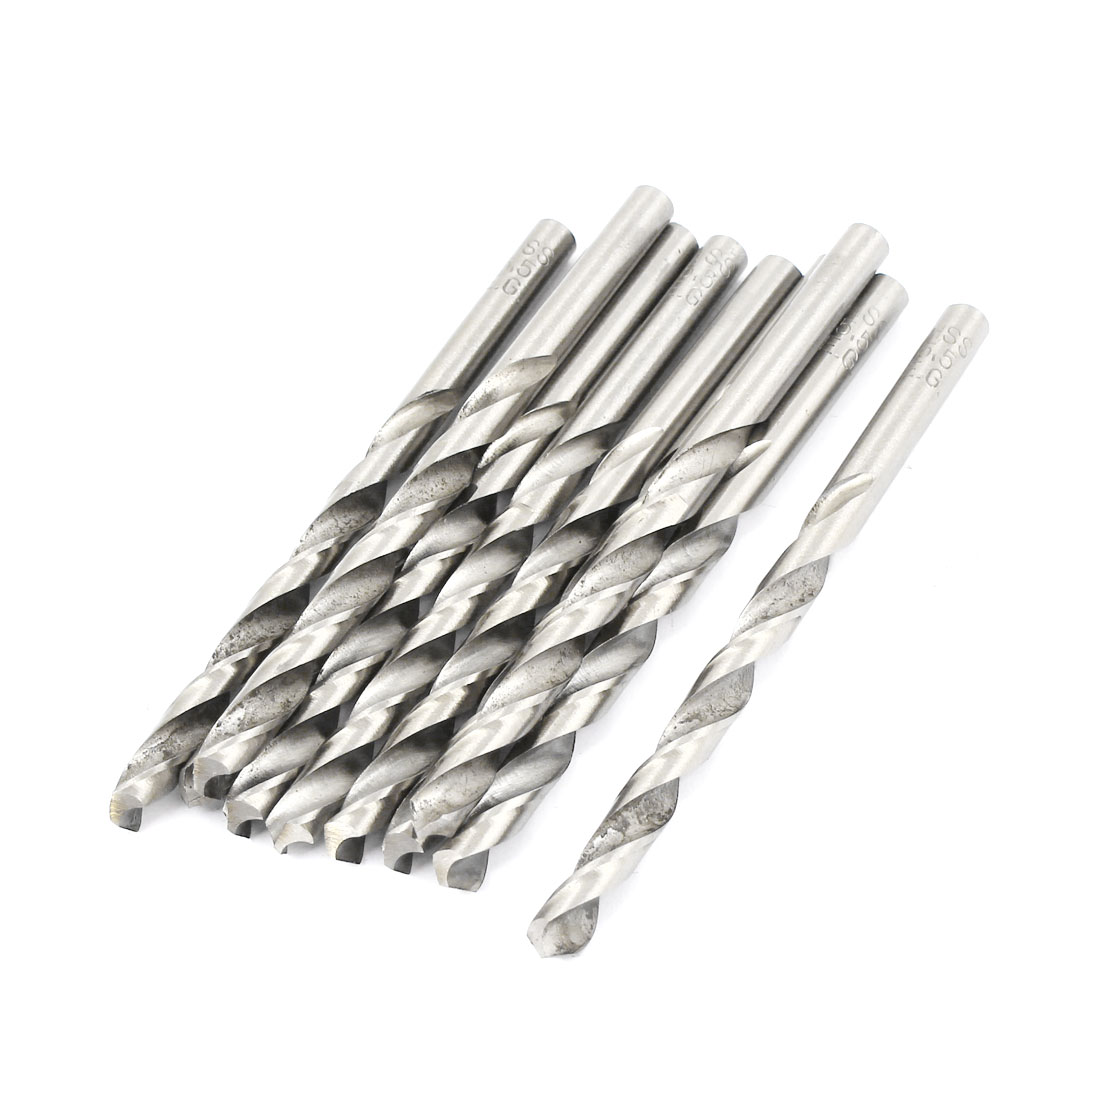 10 Pcs 59mm Length Flute 5.2mm Dia Metal Marble HSS Twist Drilling Drill Bit